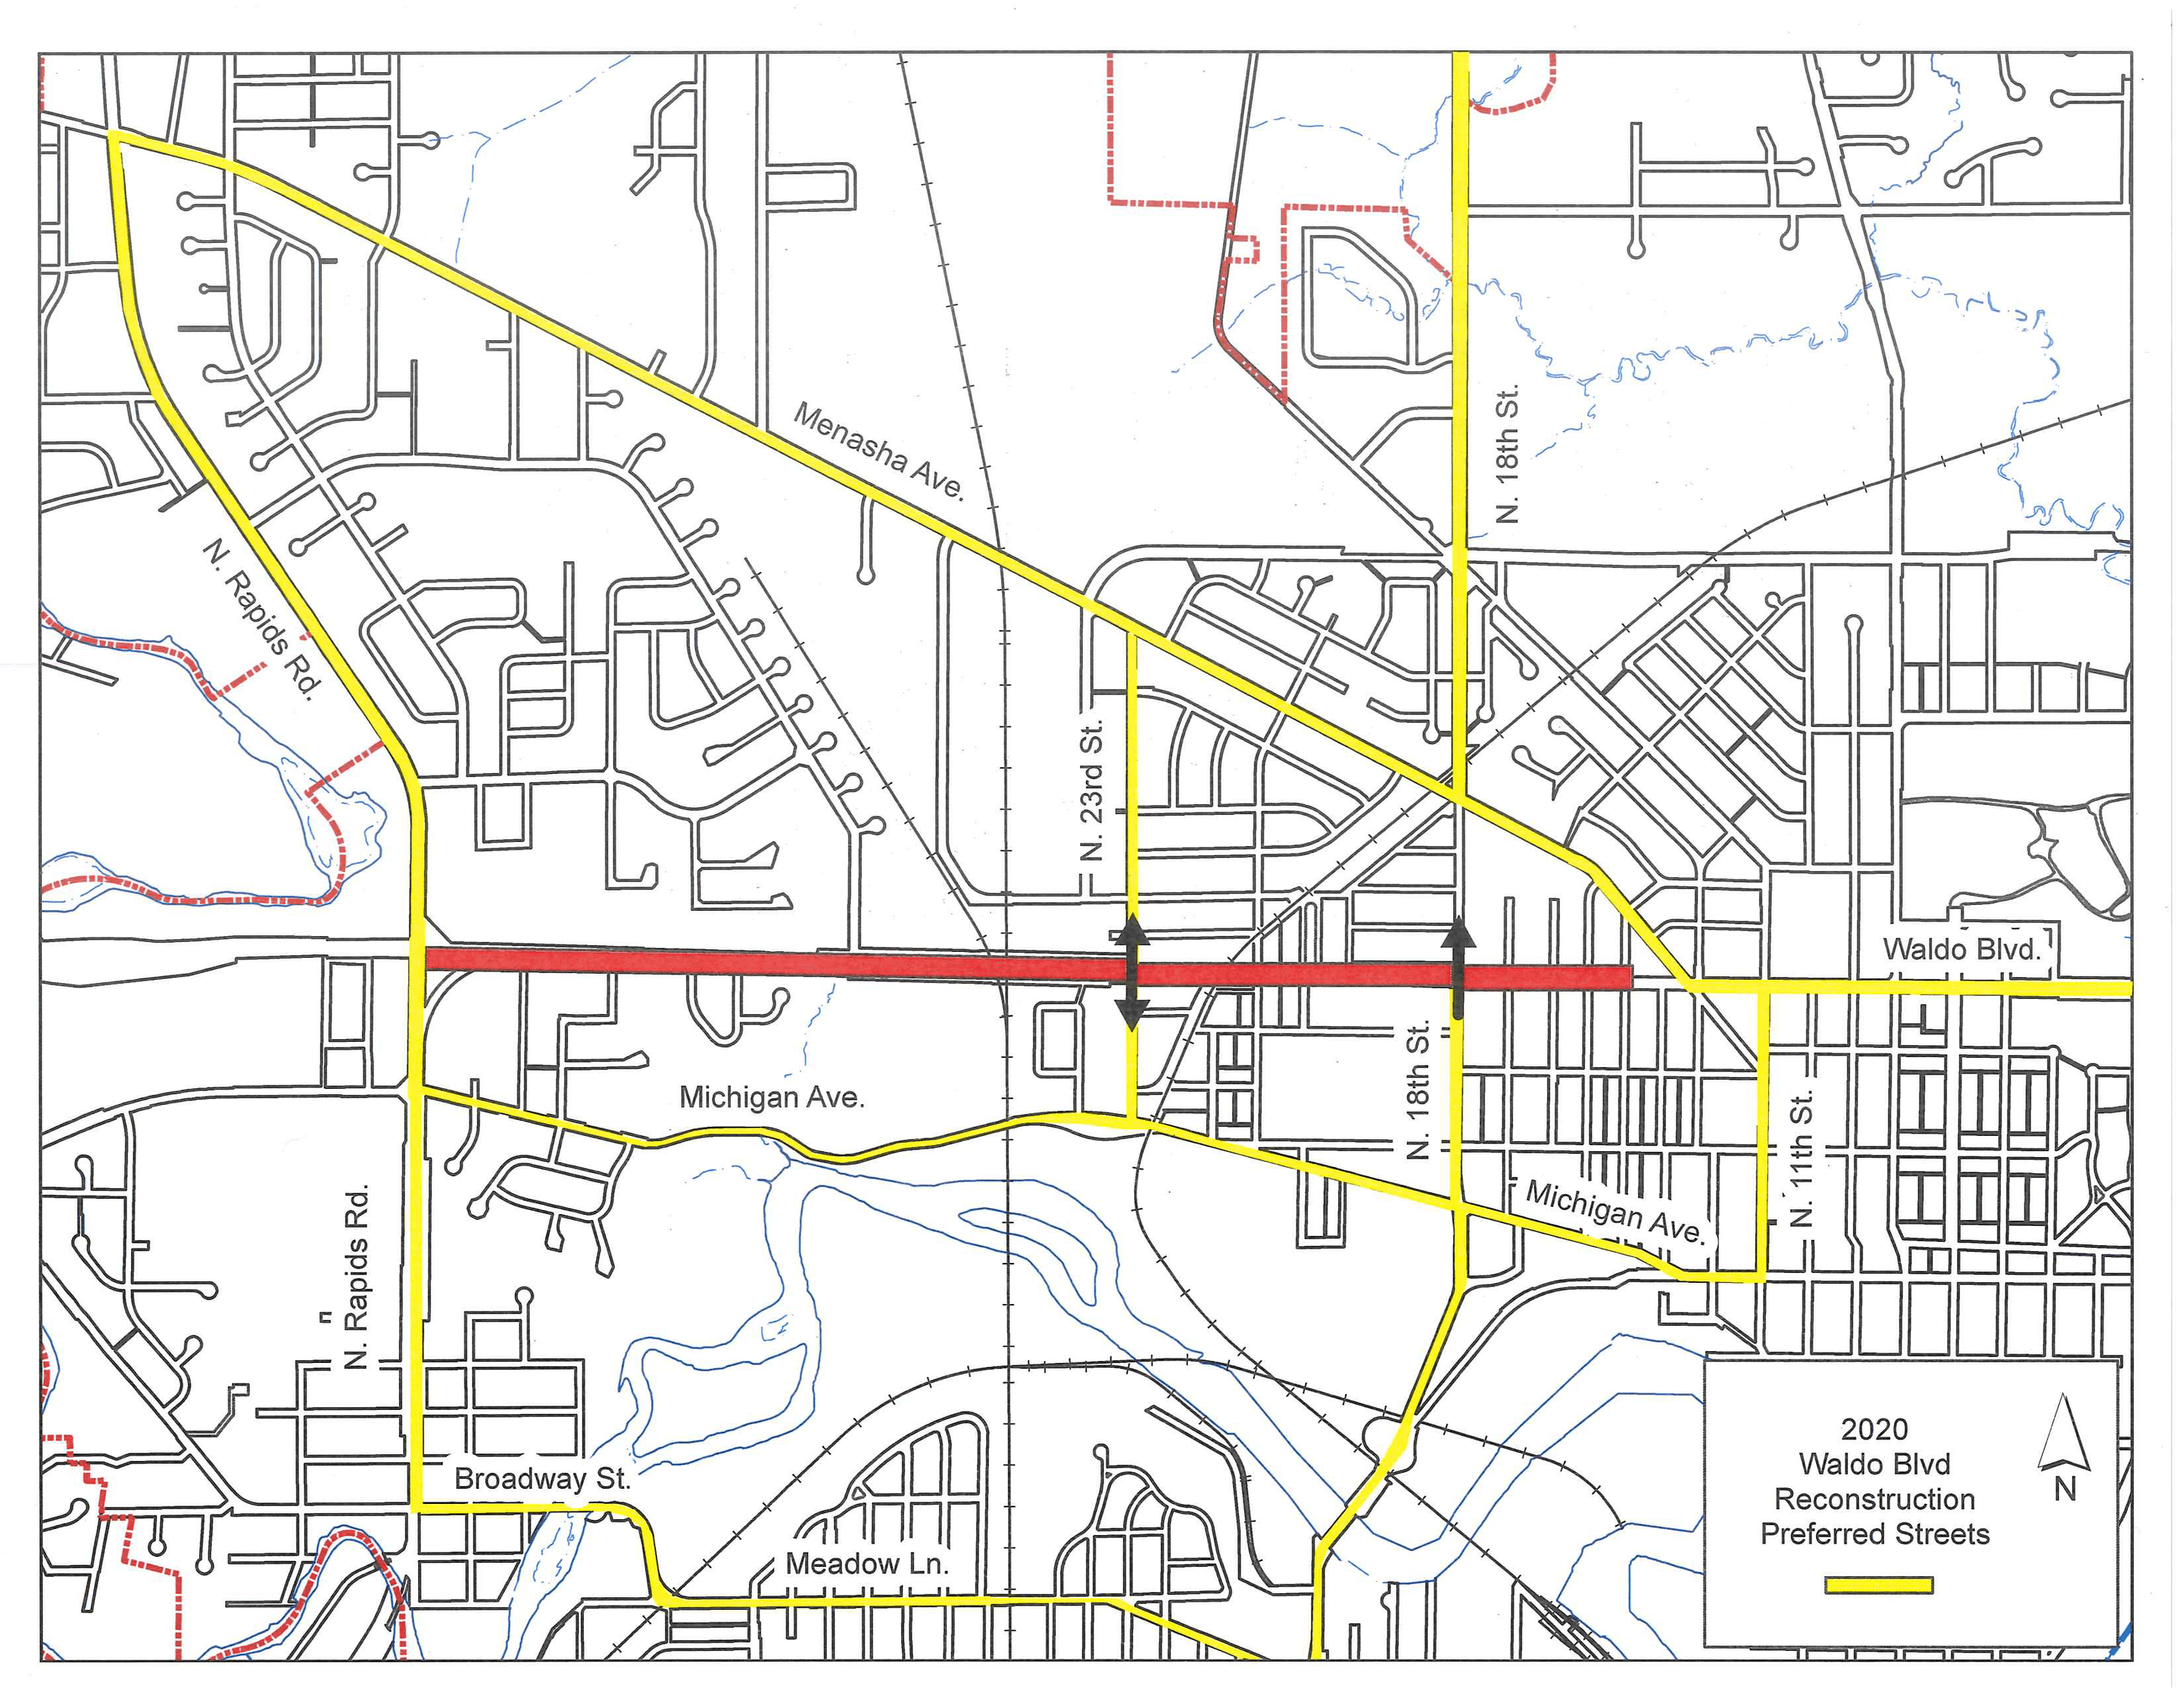 Waldo Blvd Preferred Routes